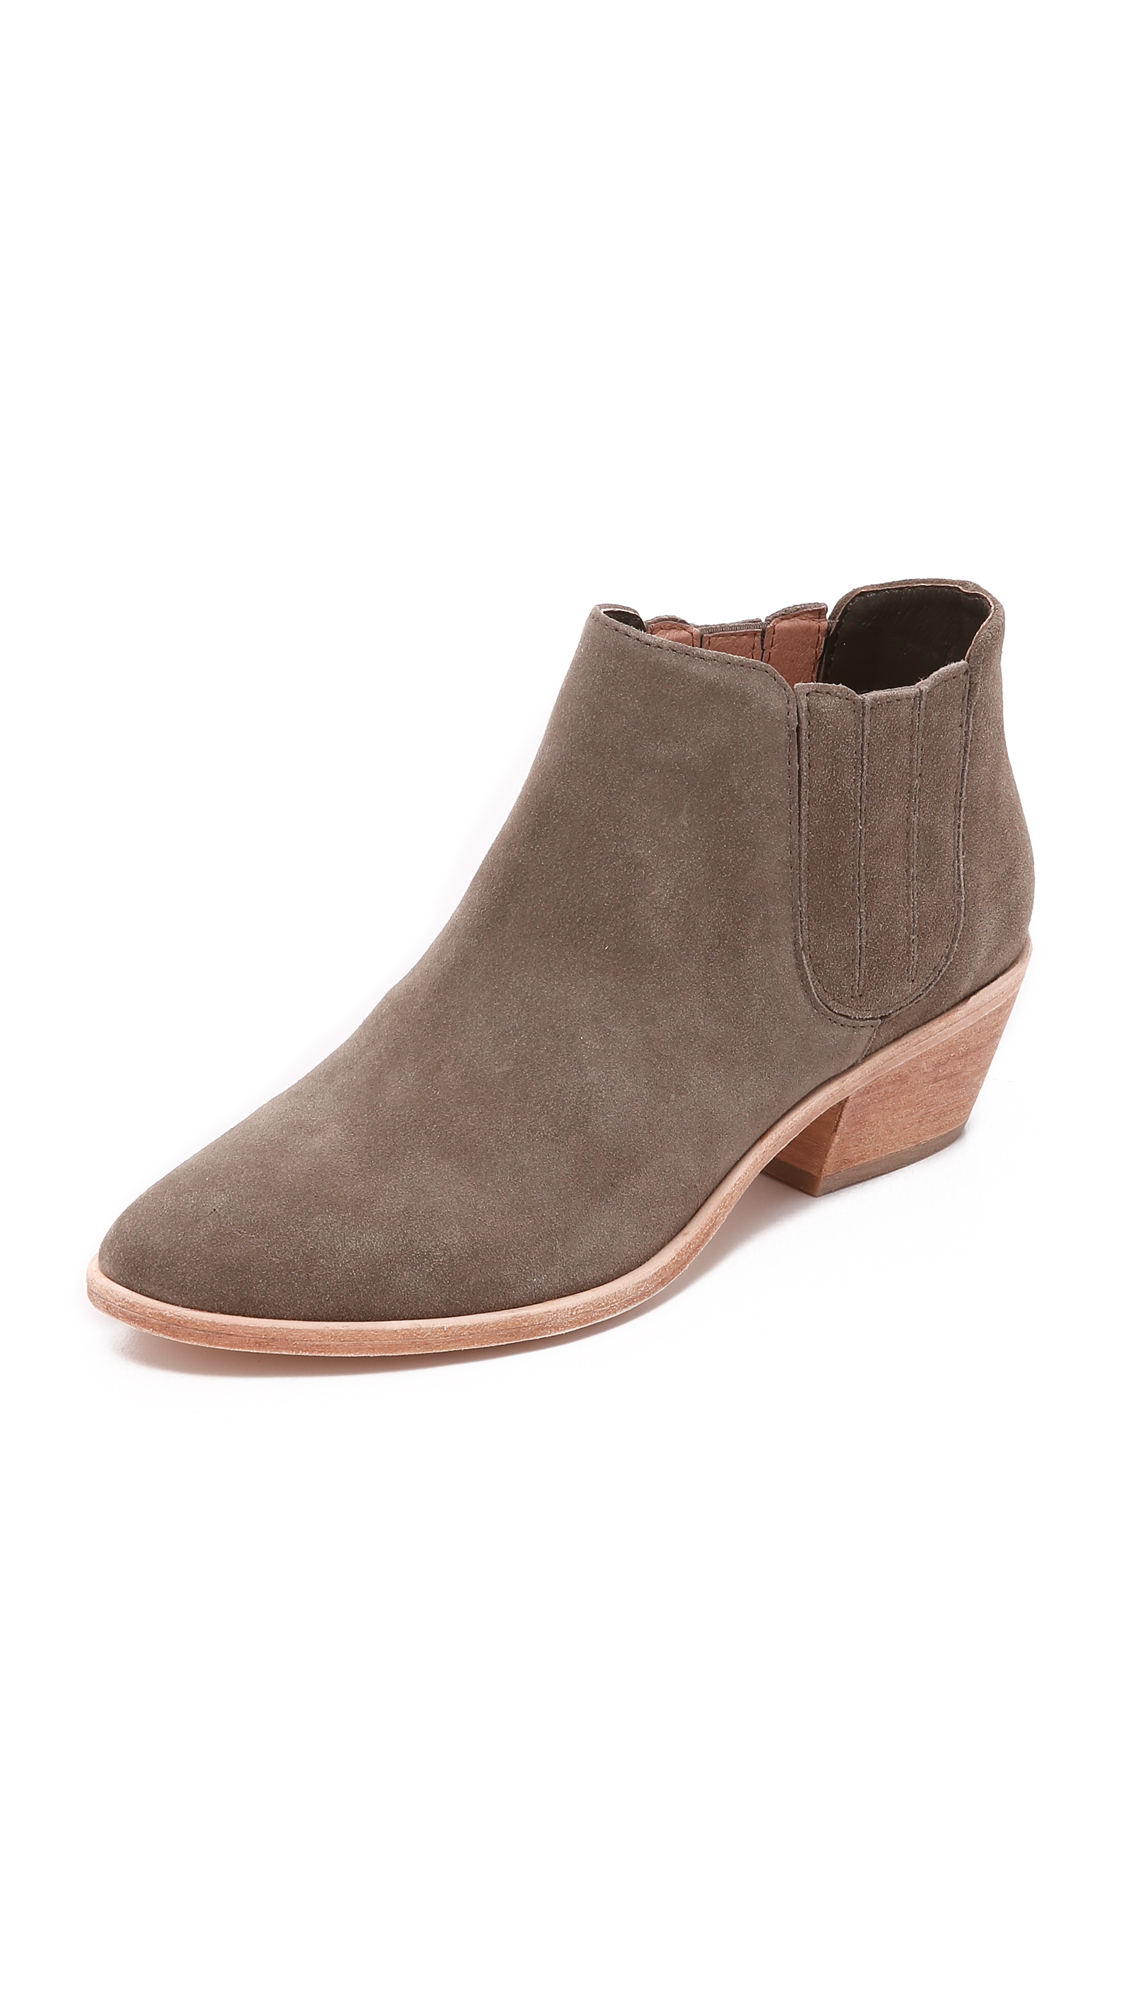 Photo of Joie Barlow Suede Booties Charcoal - Joie online